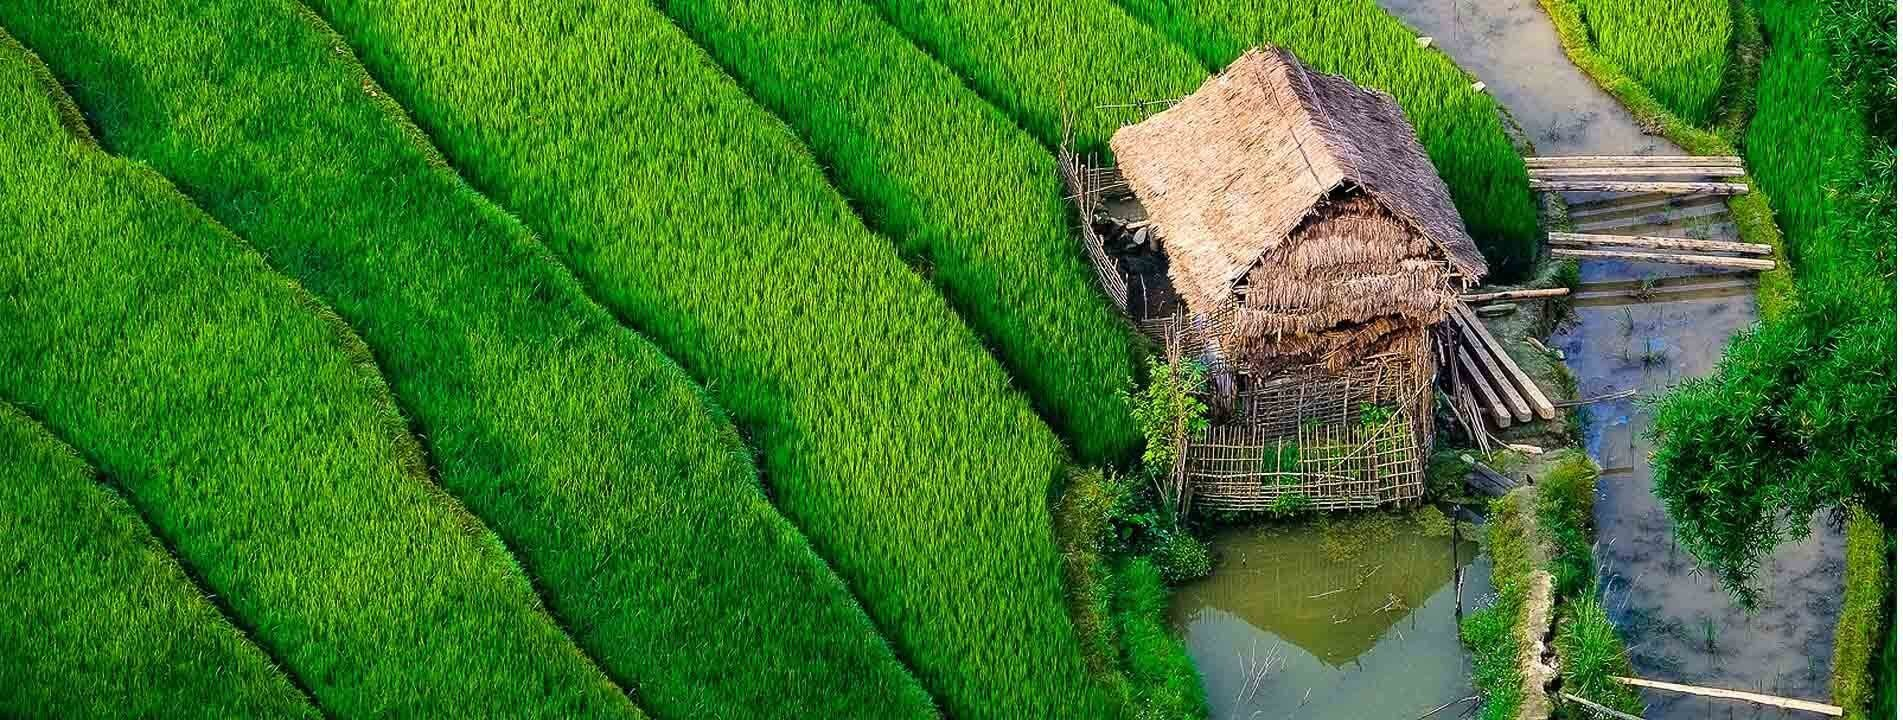 13-Day Vietnam Classic Tour with Sapa